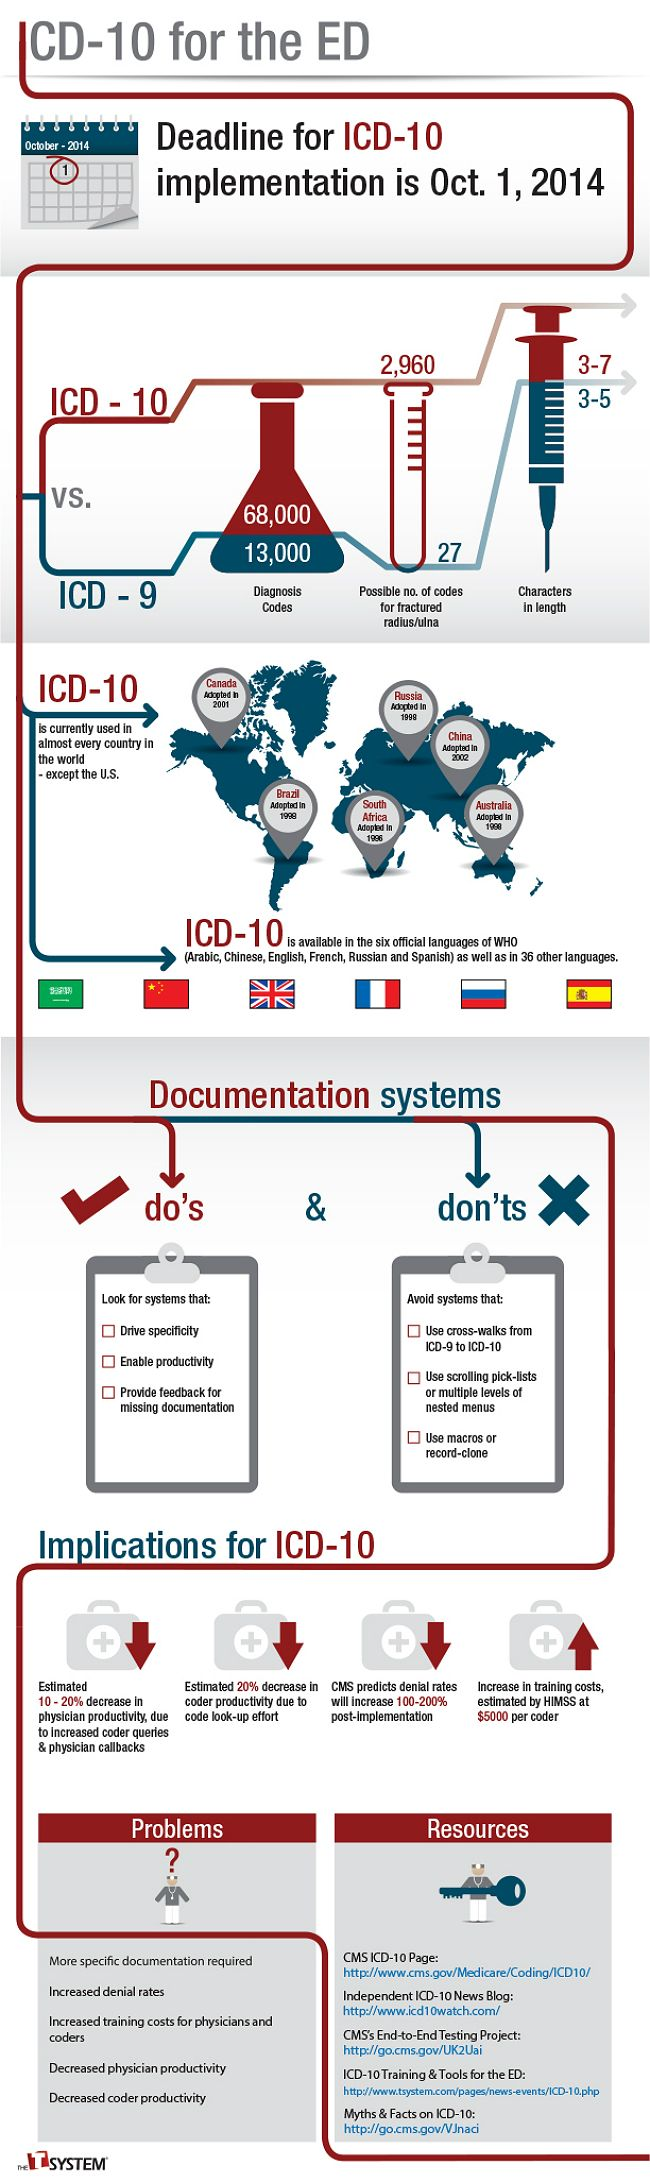 88 best icd 10 images on pinterest icd 10 medical coder and revenue cycle infrographic icd 10 xflitez Choice Image